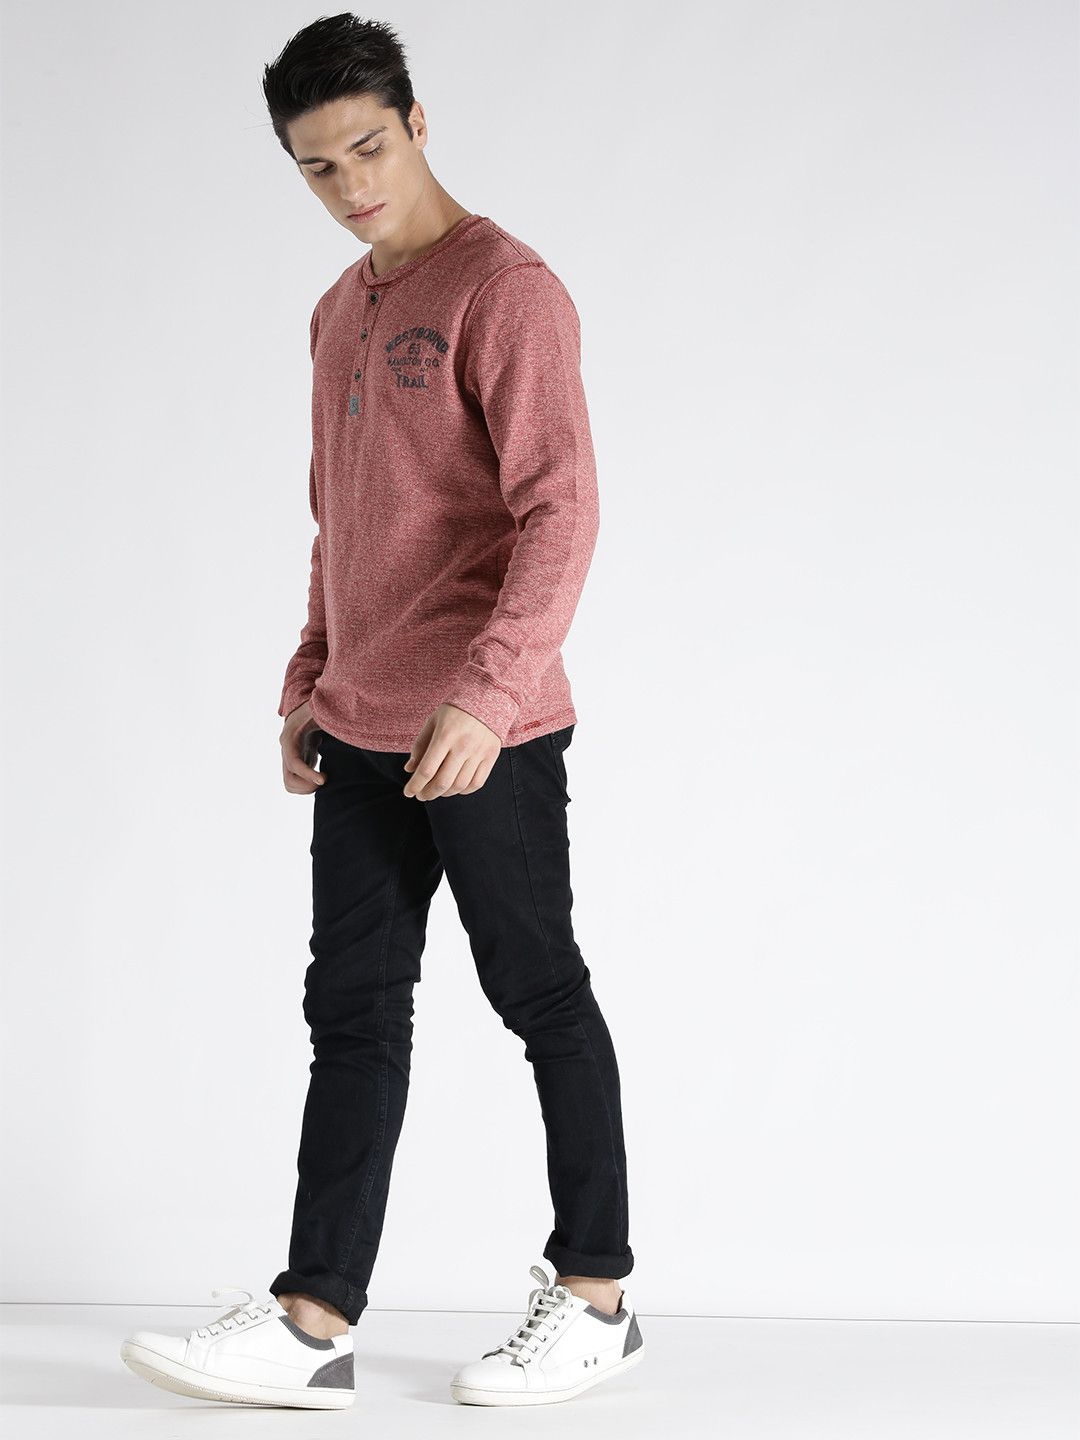 S Oliver Coral Red Solid Henley Neck T Shirt Mens Outfits Shirt Online Neck T Shirt